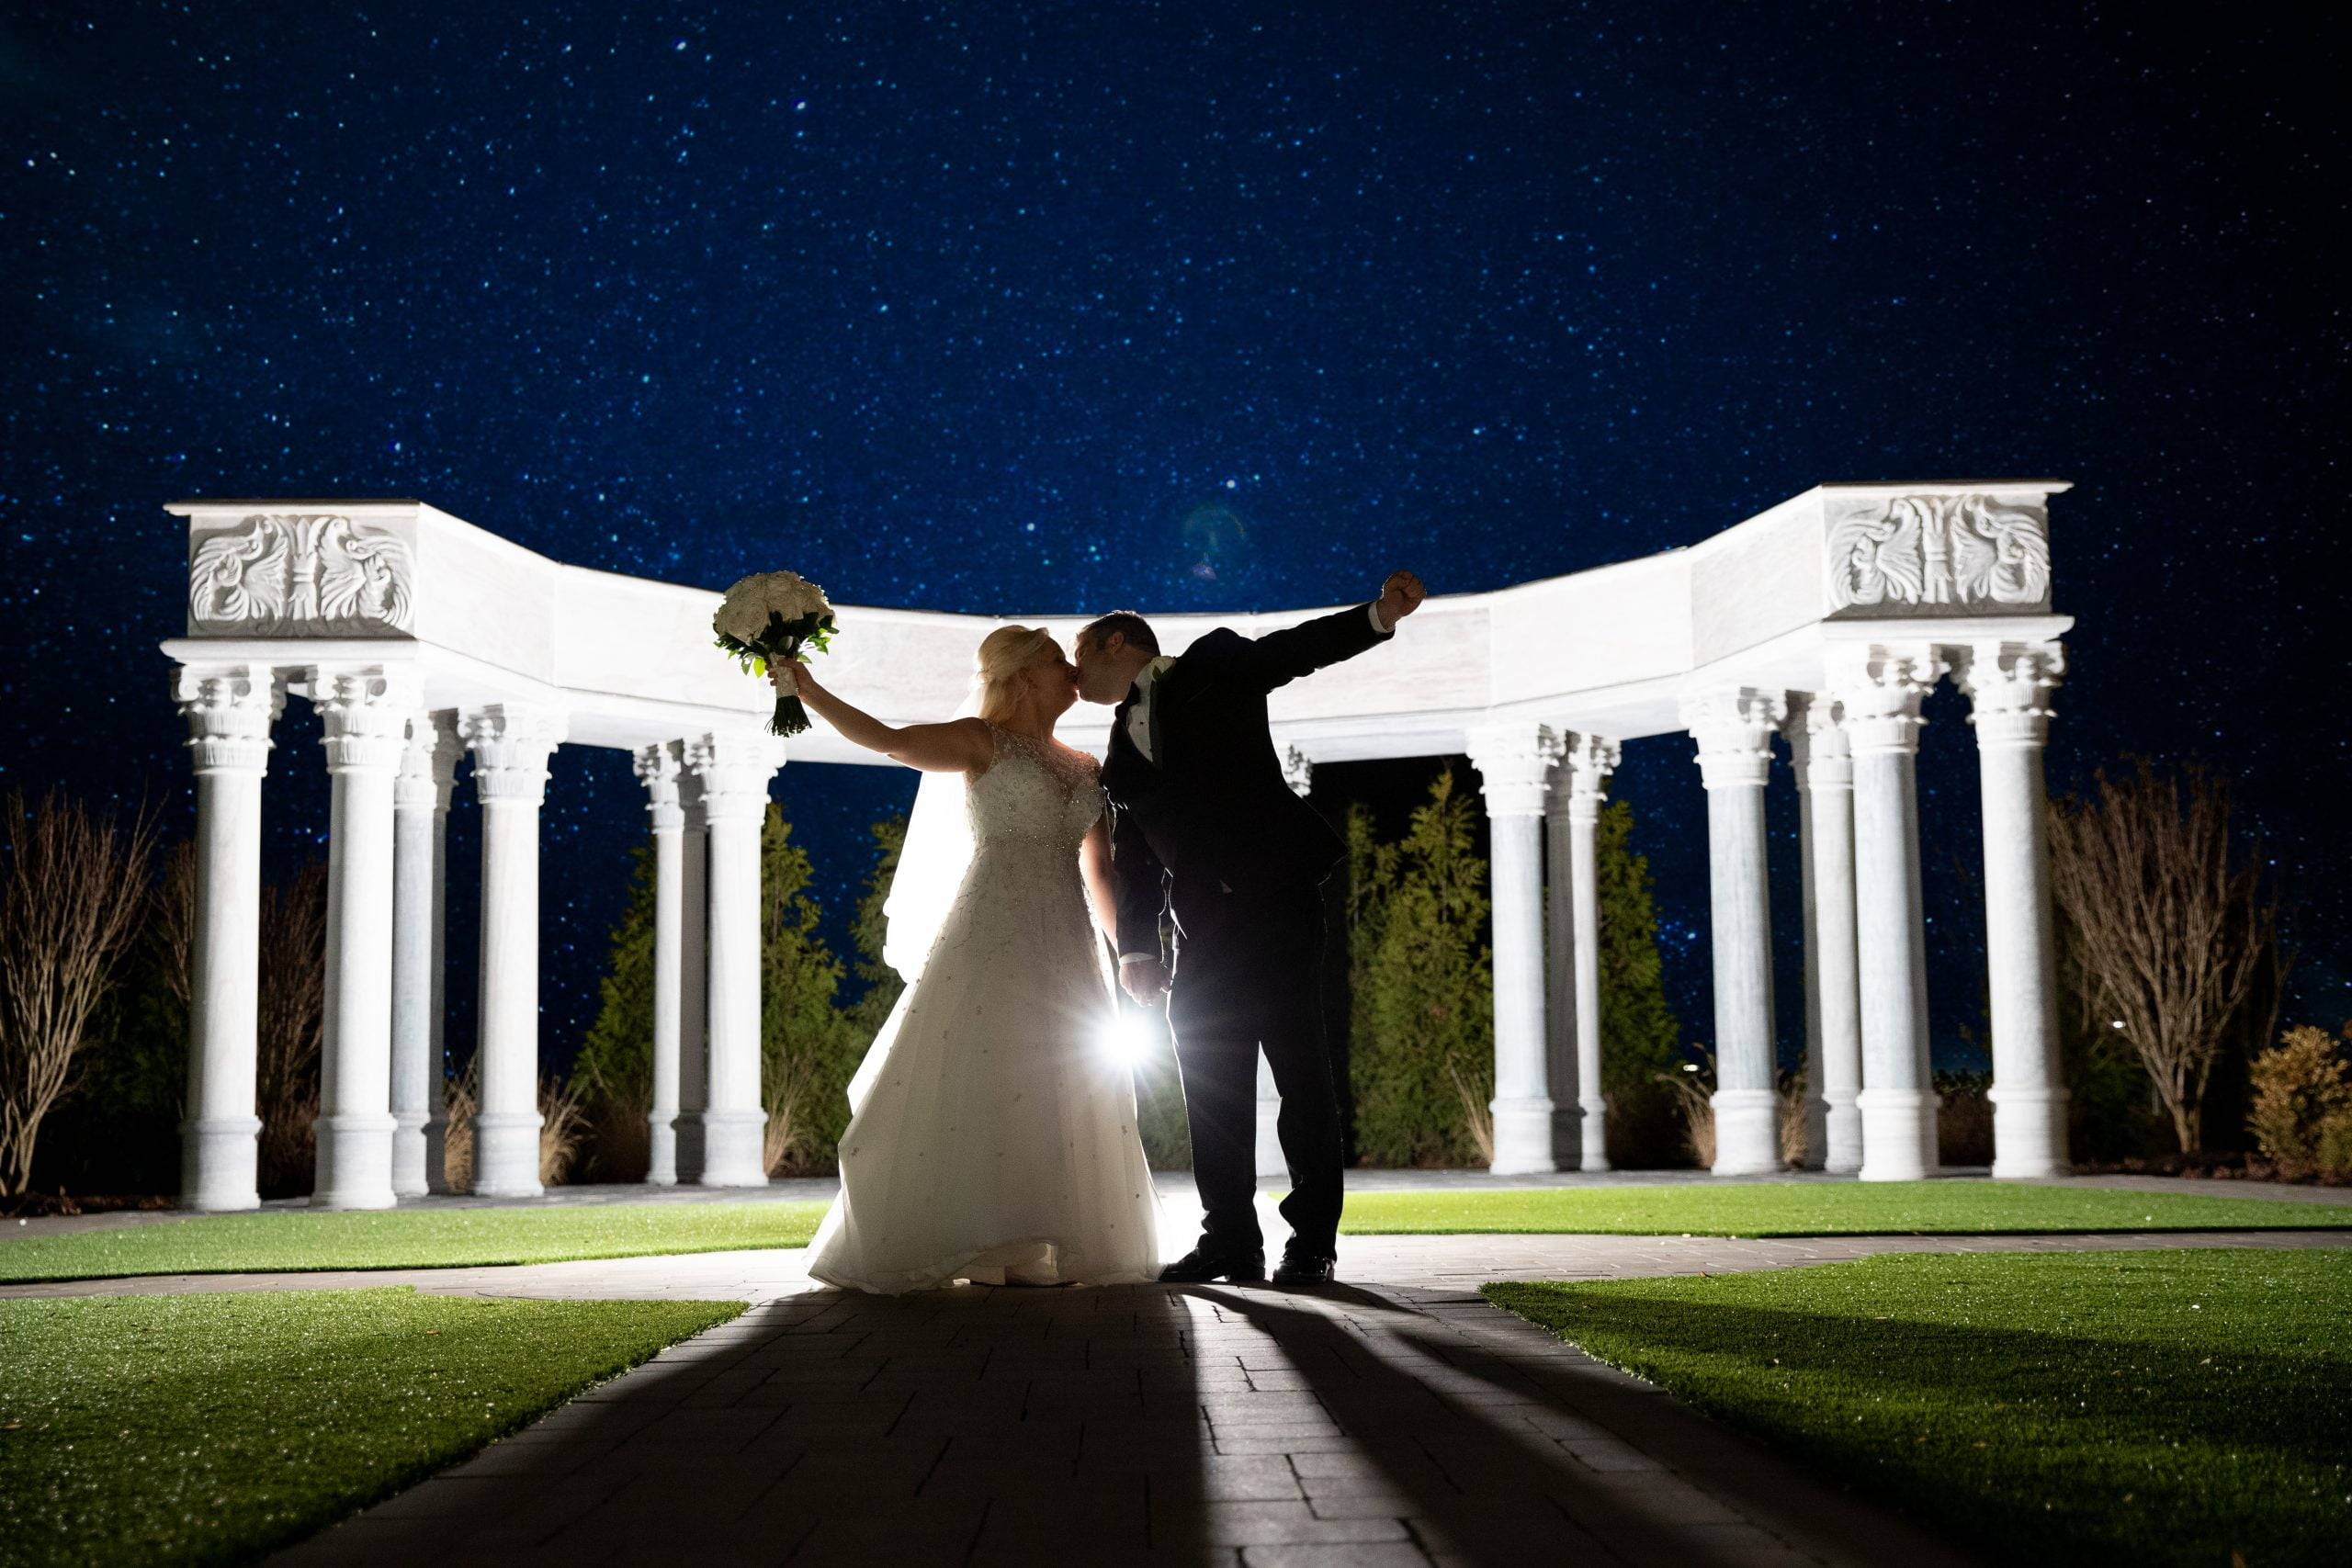 Meadow Wood bride and groom at night